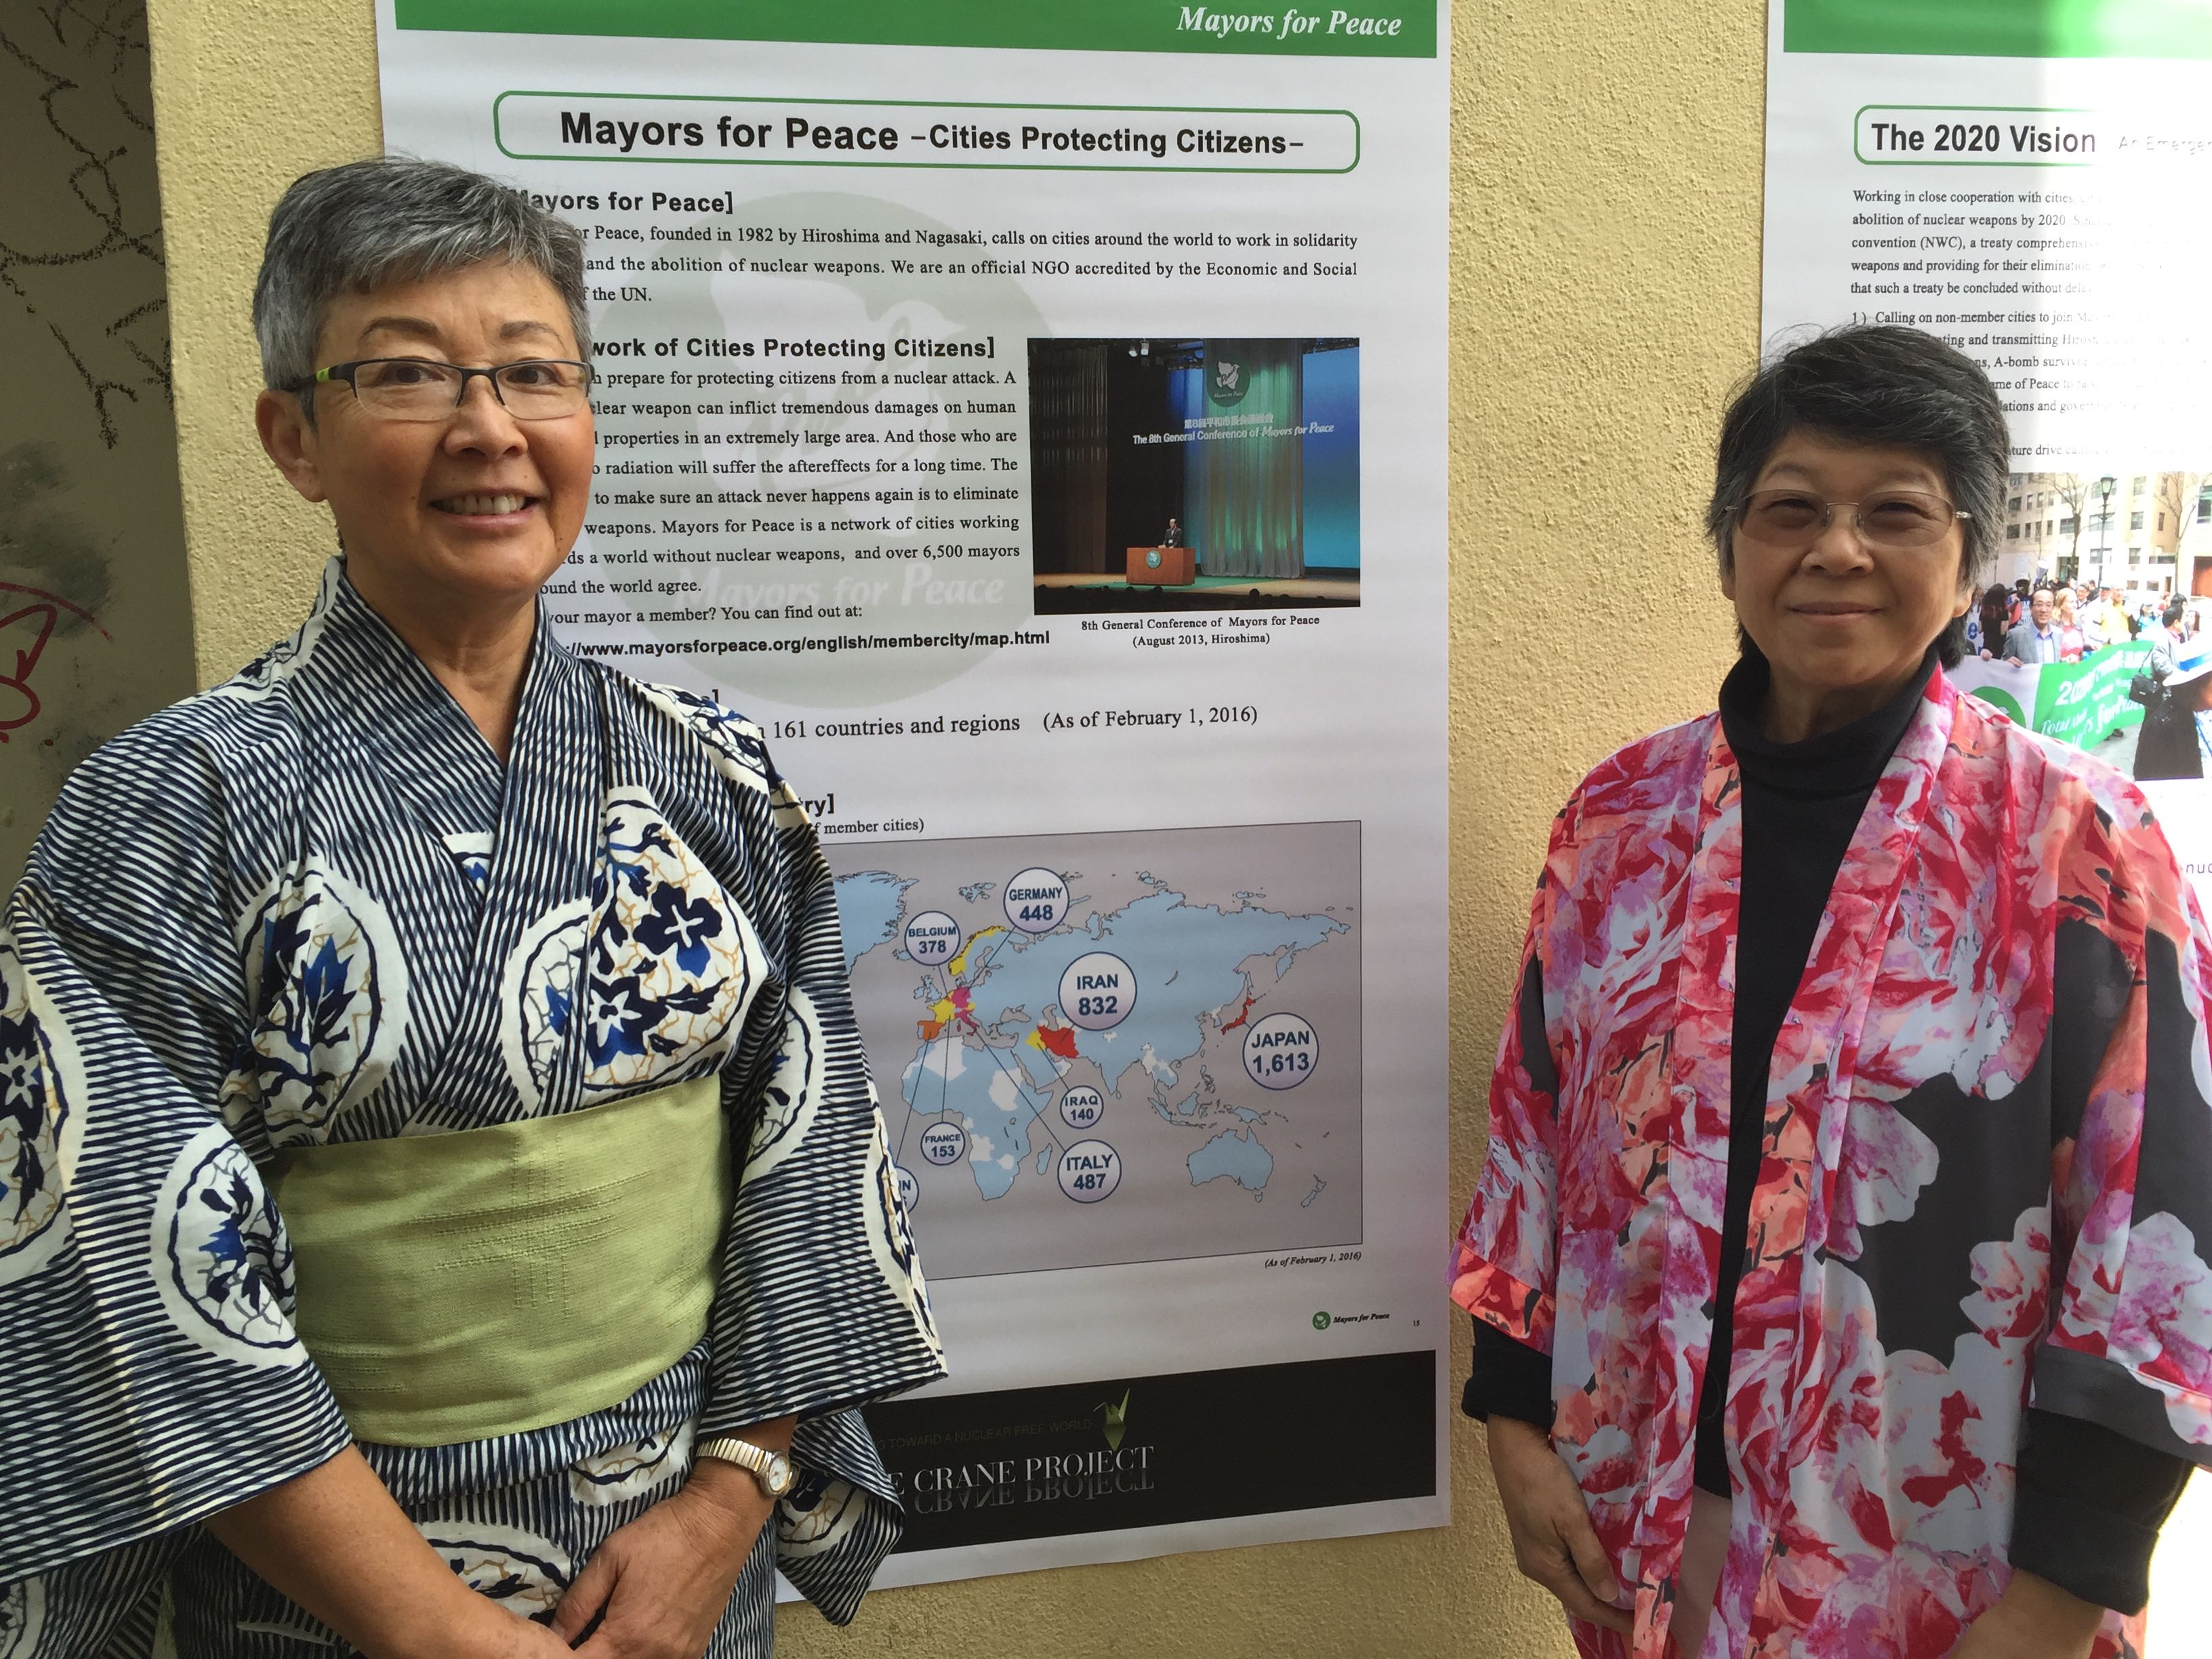 Sachiko Knappman and Phyllis Tajii in front of the Mayors for Peace Exhibit from Hiroshima